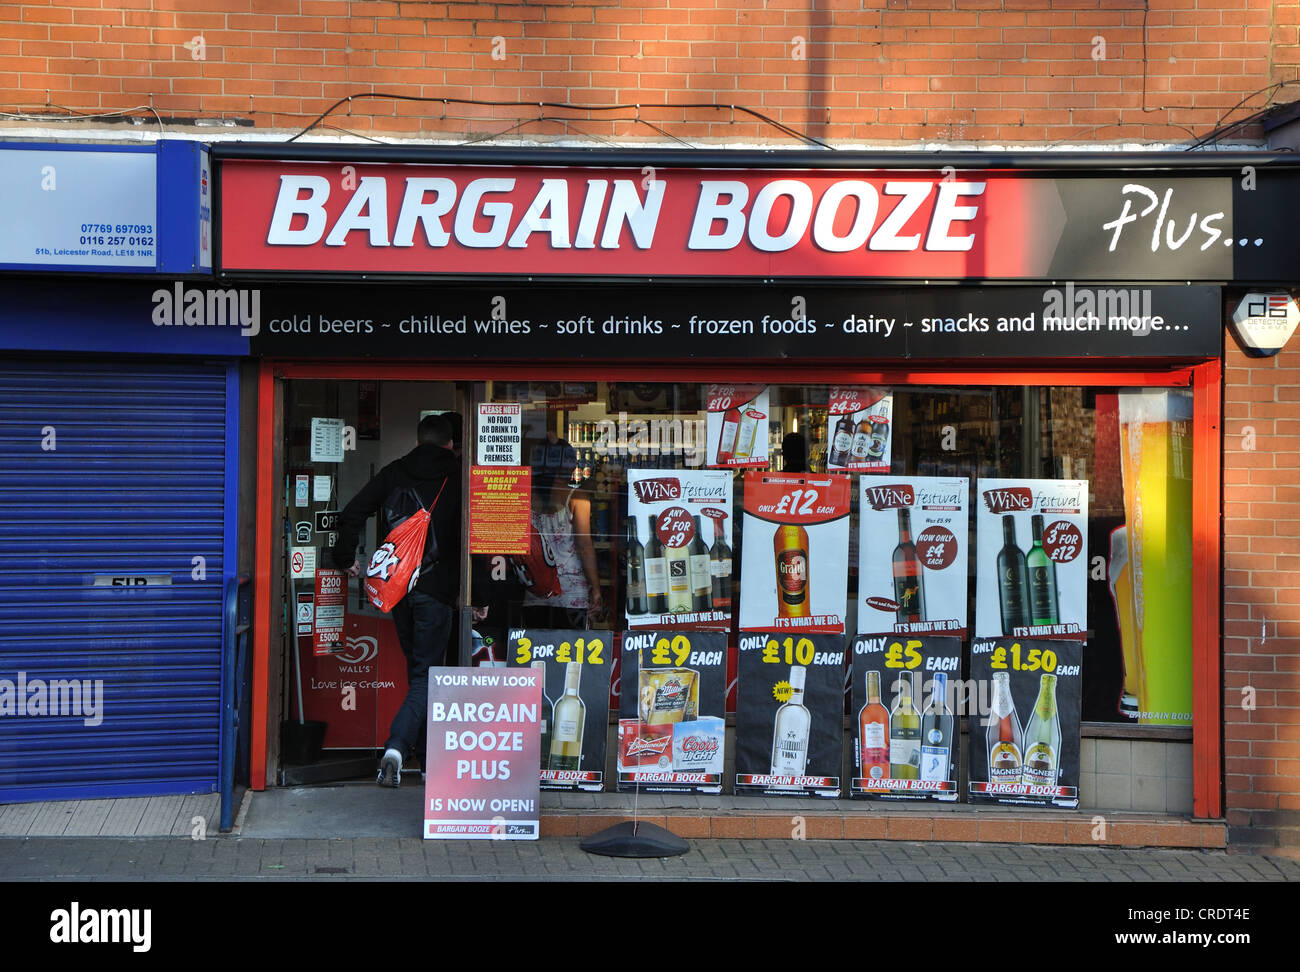 Bargain Booze off-licence, Wigston, Leicester, England, UK - Stock Image